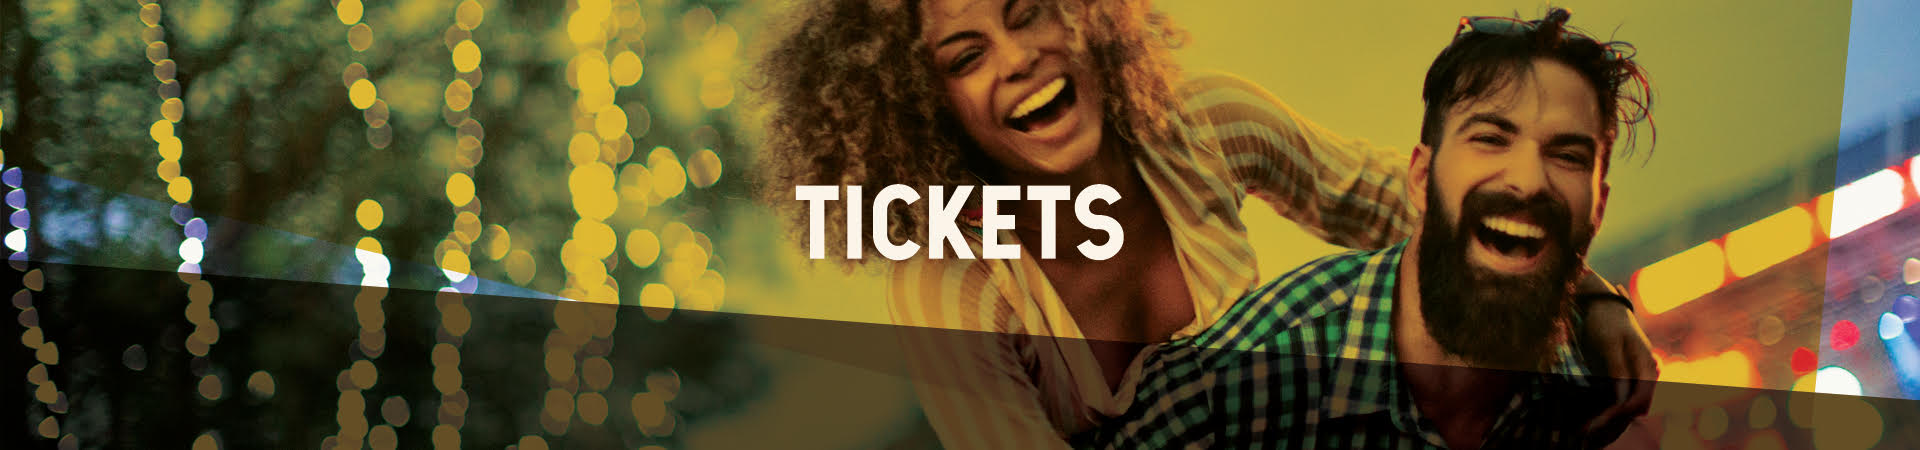 Tickets Web Banner, couple smiling with a stage in the background